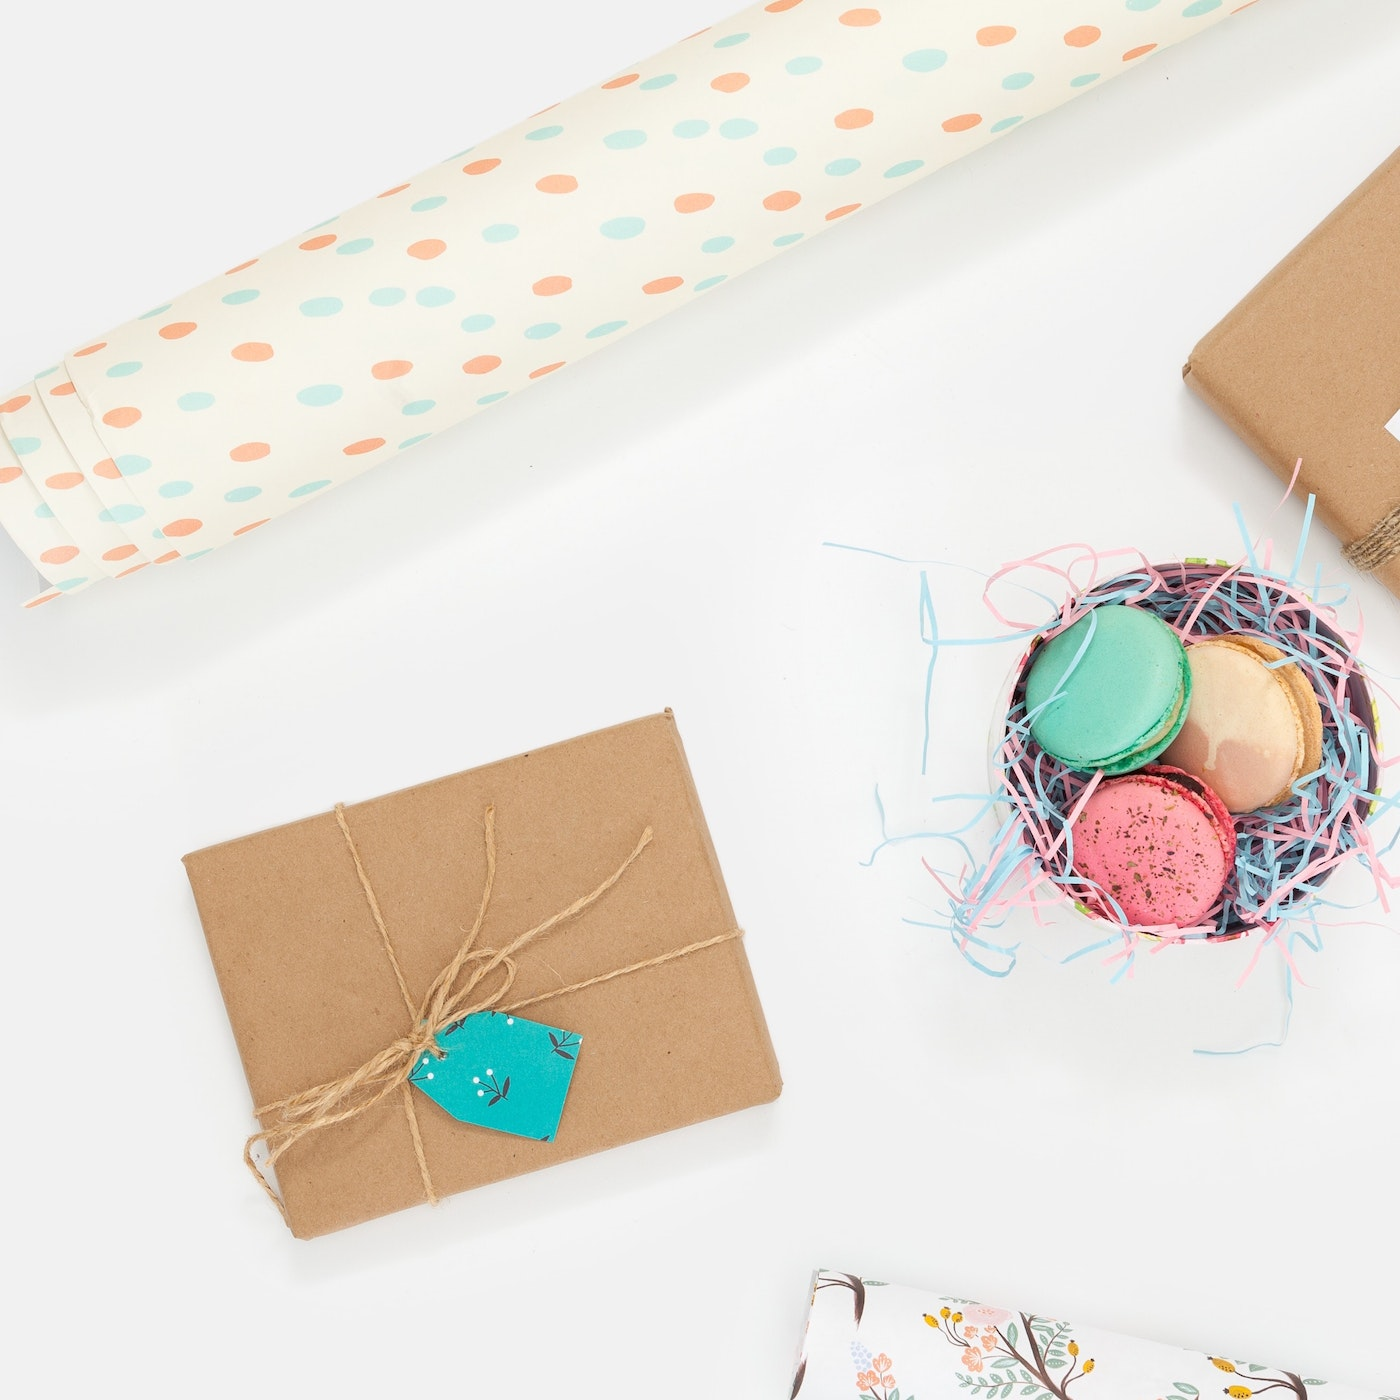 """No Gifts Wedding: 4 Alternatives To The """"No Boxed Gifts"""" Phrase On Wedding"""